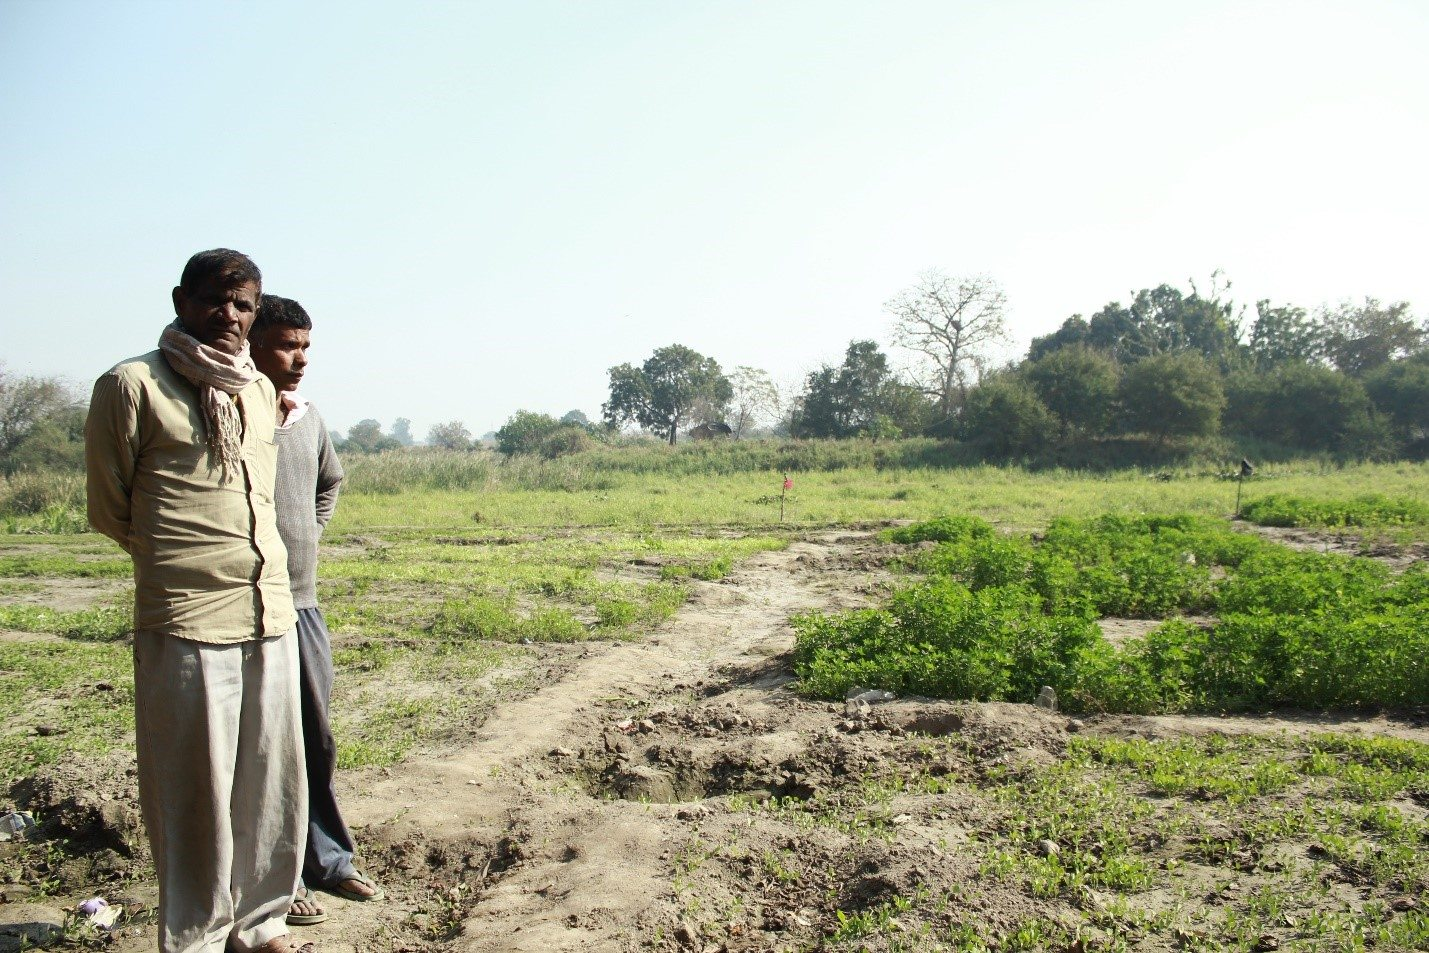 Kamal Singh (in the grey sweater at the back), the informally elected Head of the settlement, looking over his ruined field of spinach.